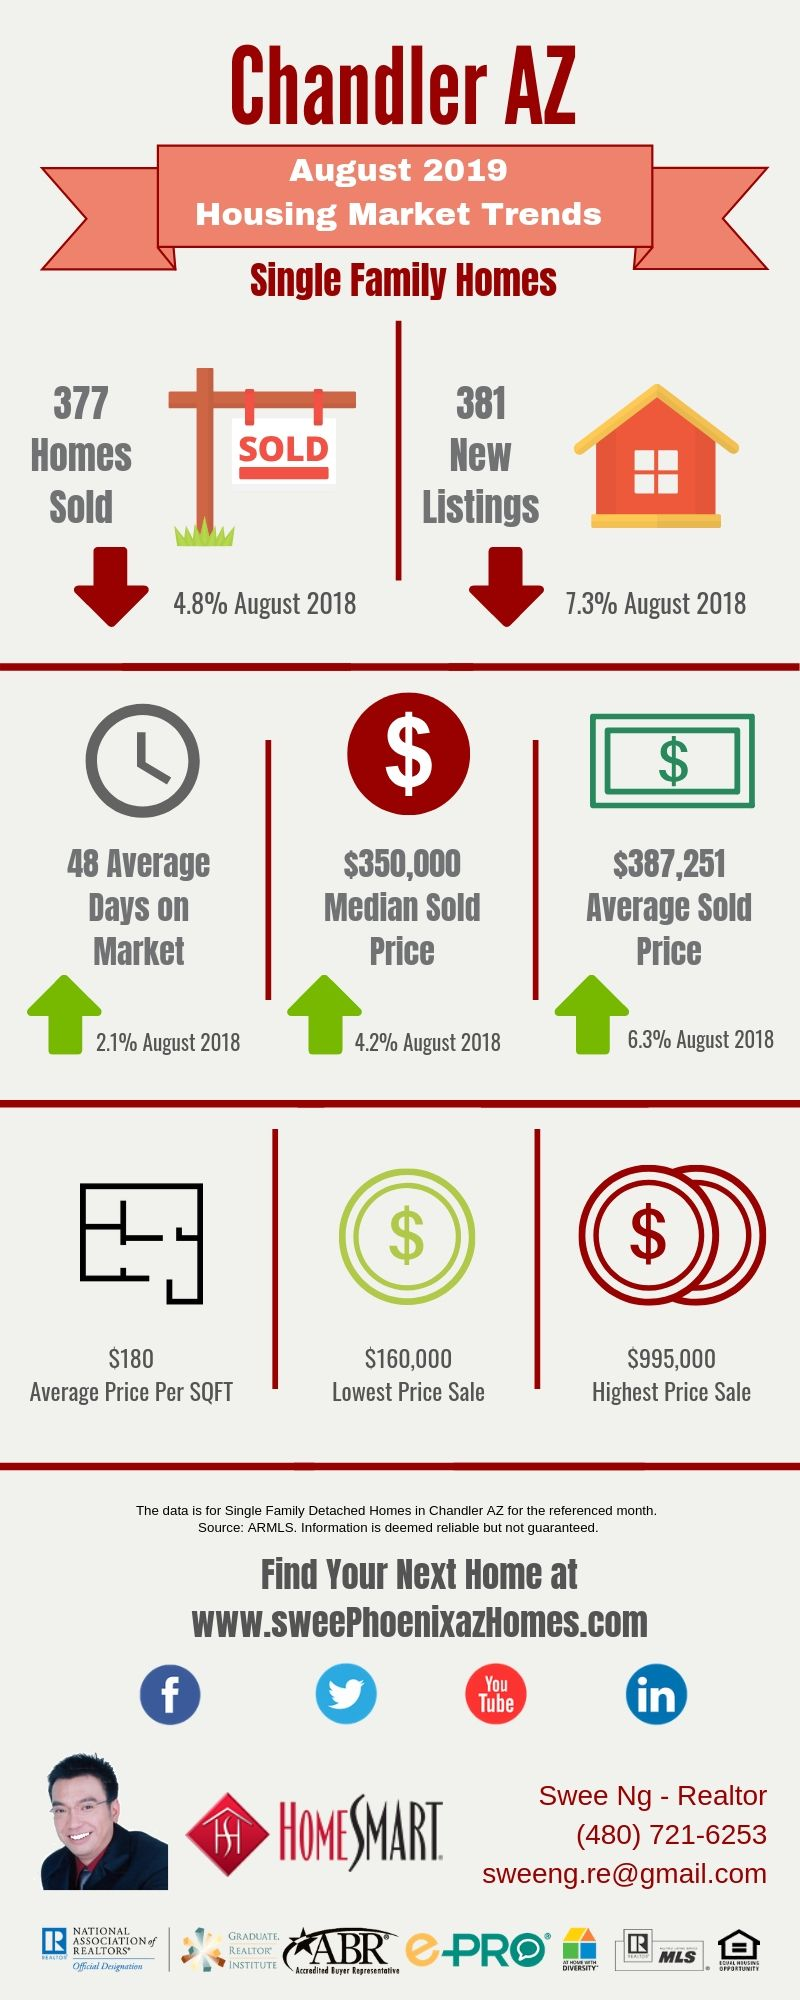 August 2019 Chandler AZ Housing Market Update by Swee Ng, House Value and Real Estate Listings